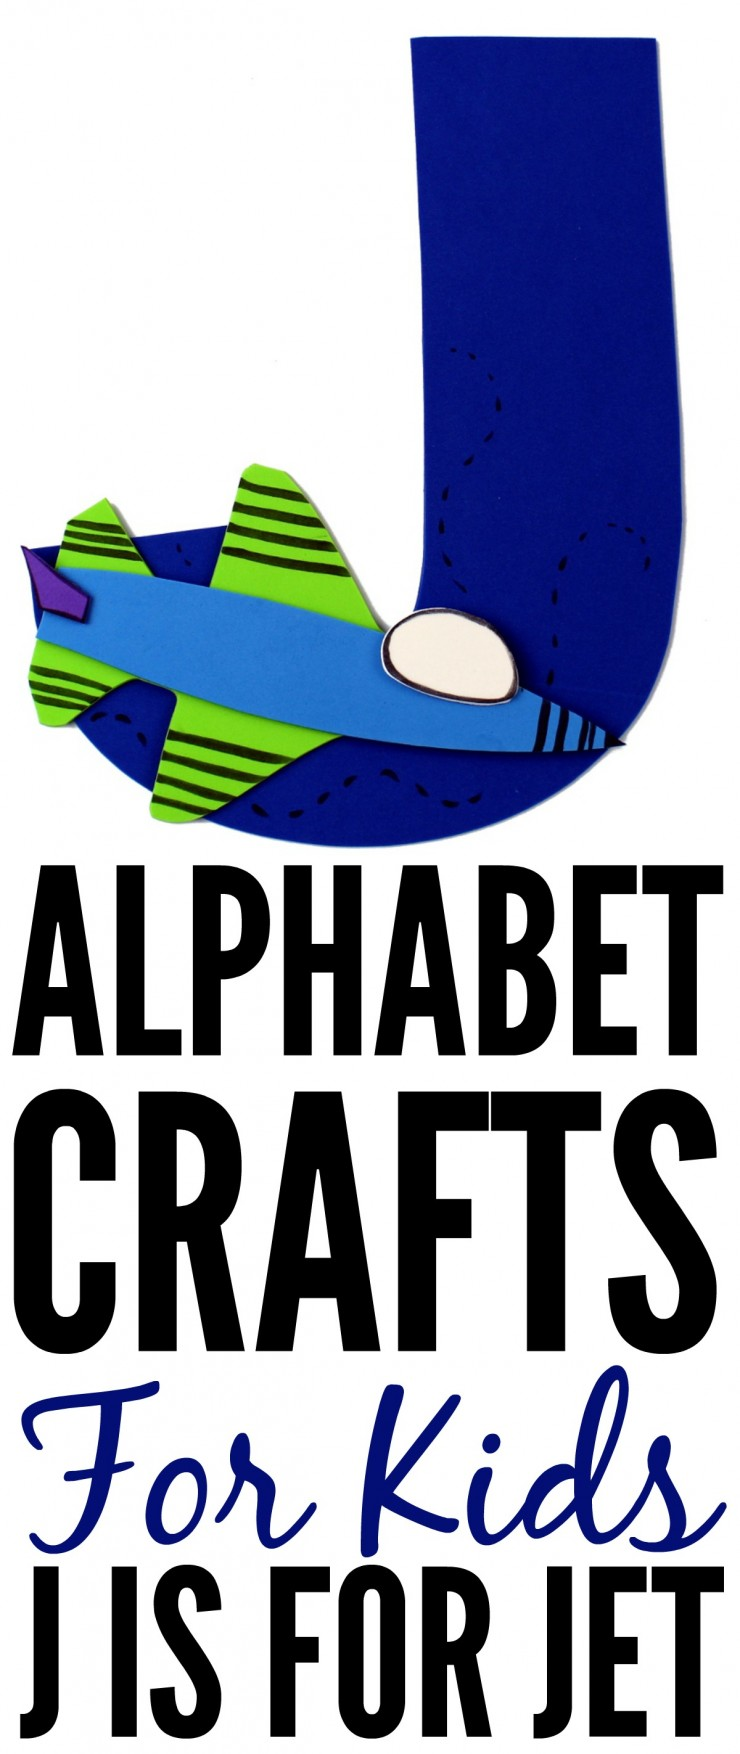 This week is my series of ABCs kids crafts featuring the Alphabet, we are doing a J is for Jet craft. These Alphabet Crafts For Kids are a fun way to introduce your child to the alphabet.